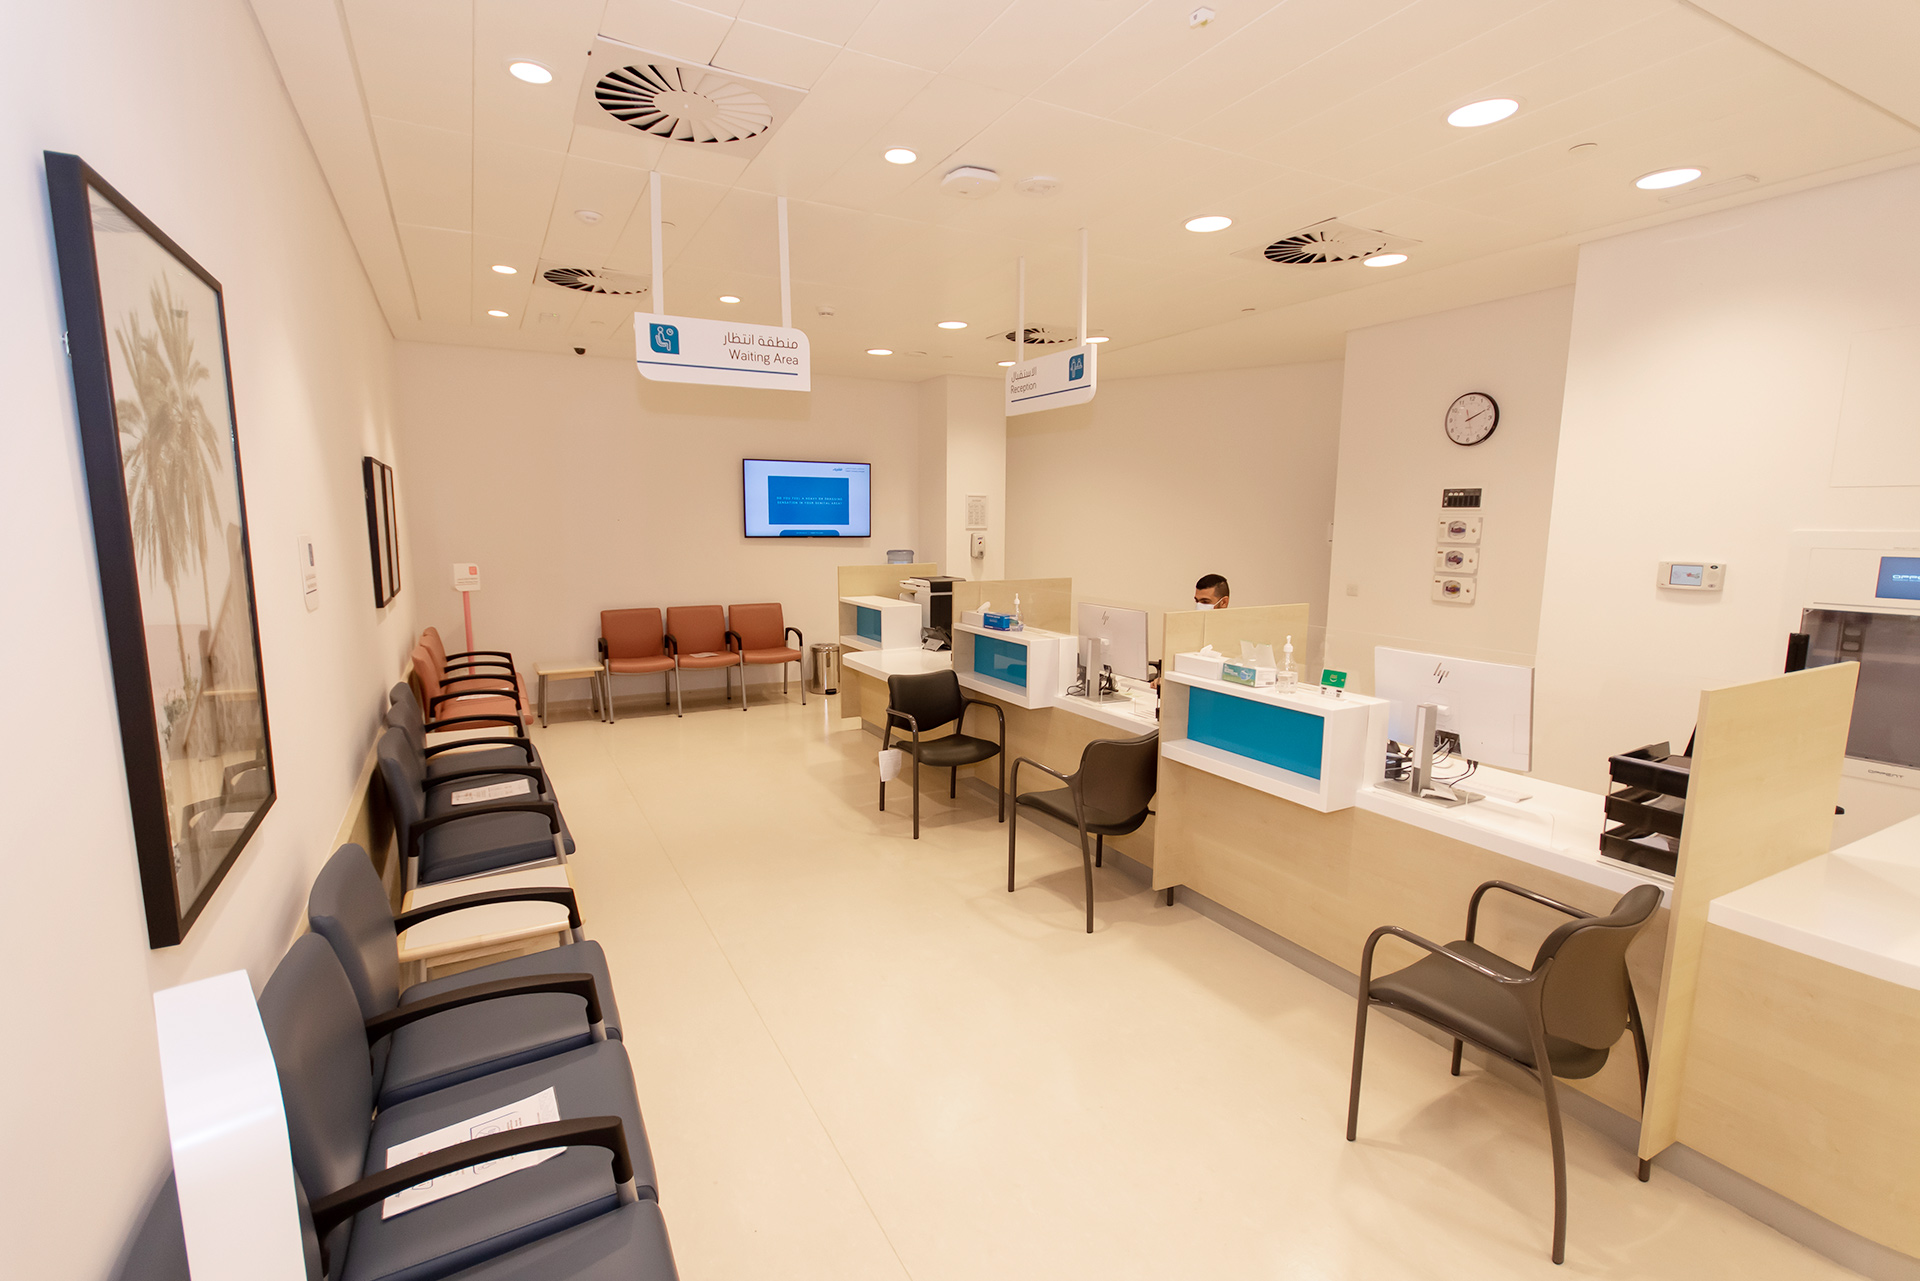 Outpatient-Witing-Area